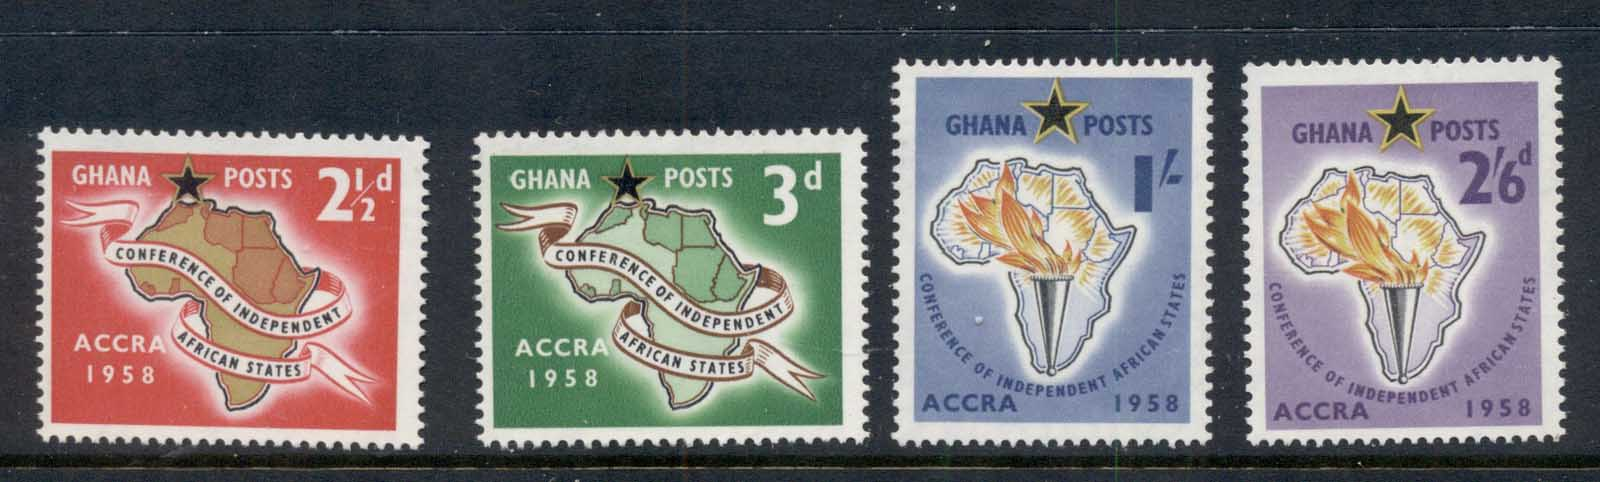 Ghana 1958 Independent African States Conference MUH